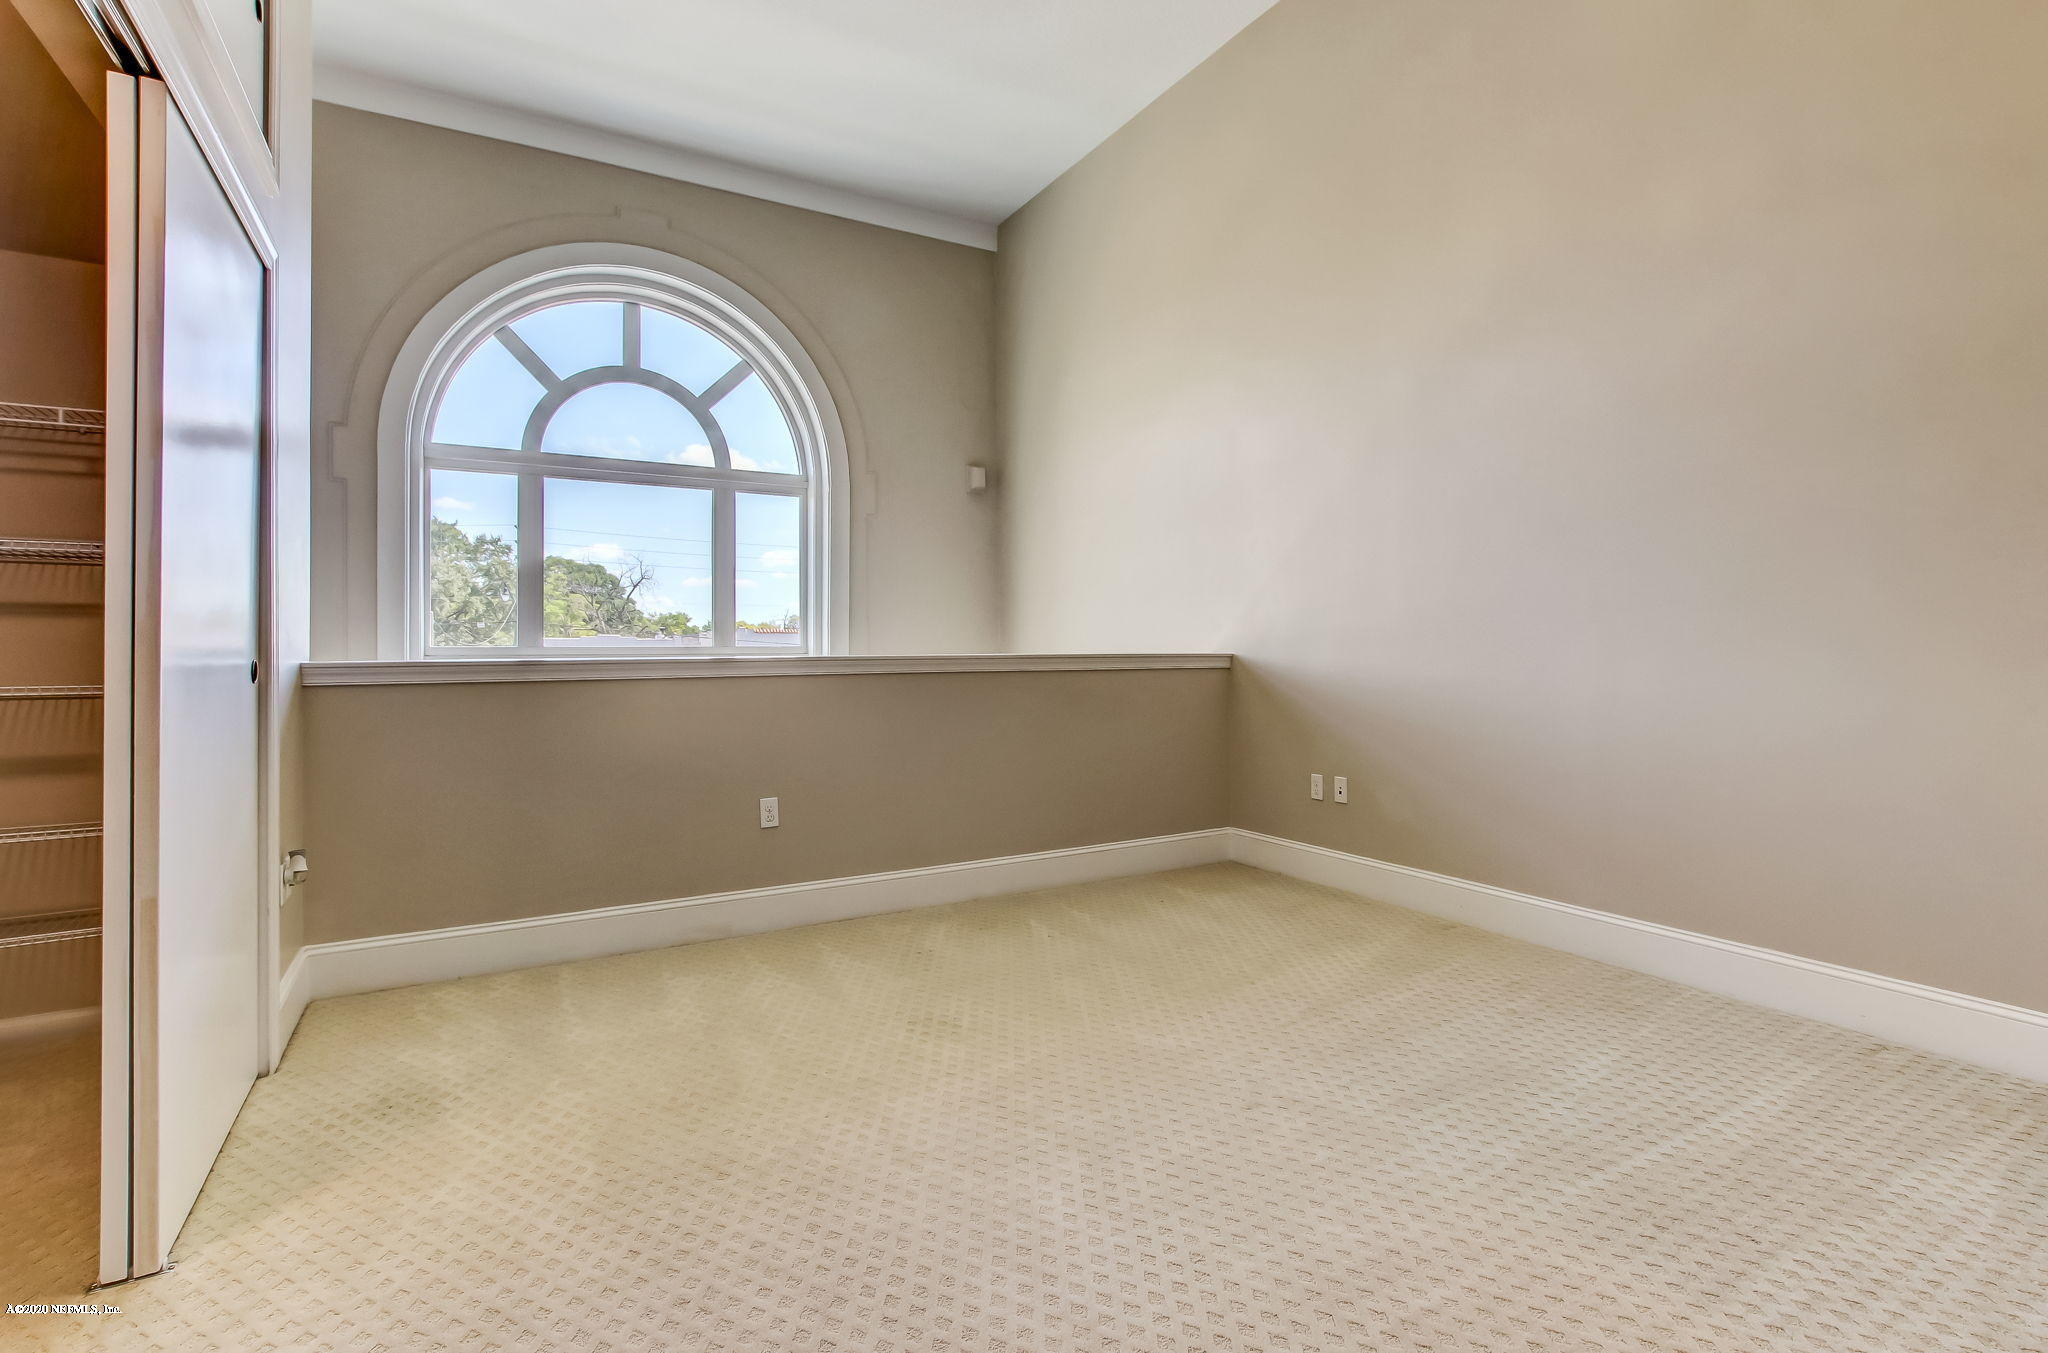 2525 COLLEGE, JACKSONVILLE, FLORIDA 32204, 2 Bedrooms Bedrooms, ,2 BathroomsBathrooms,Residential,For sale,COLLEGE,1044947